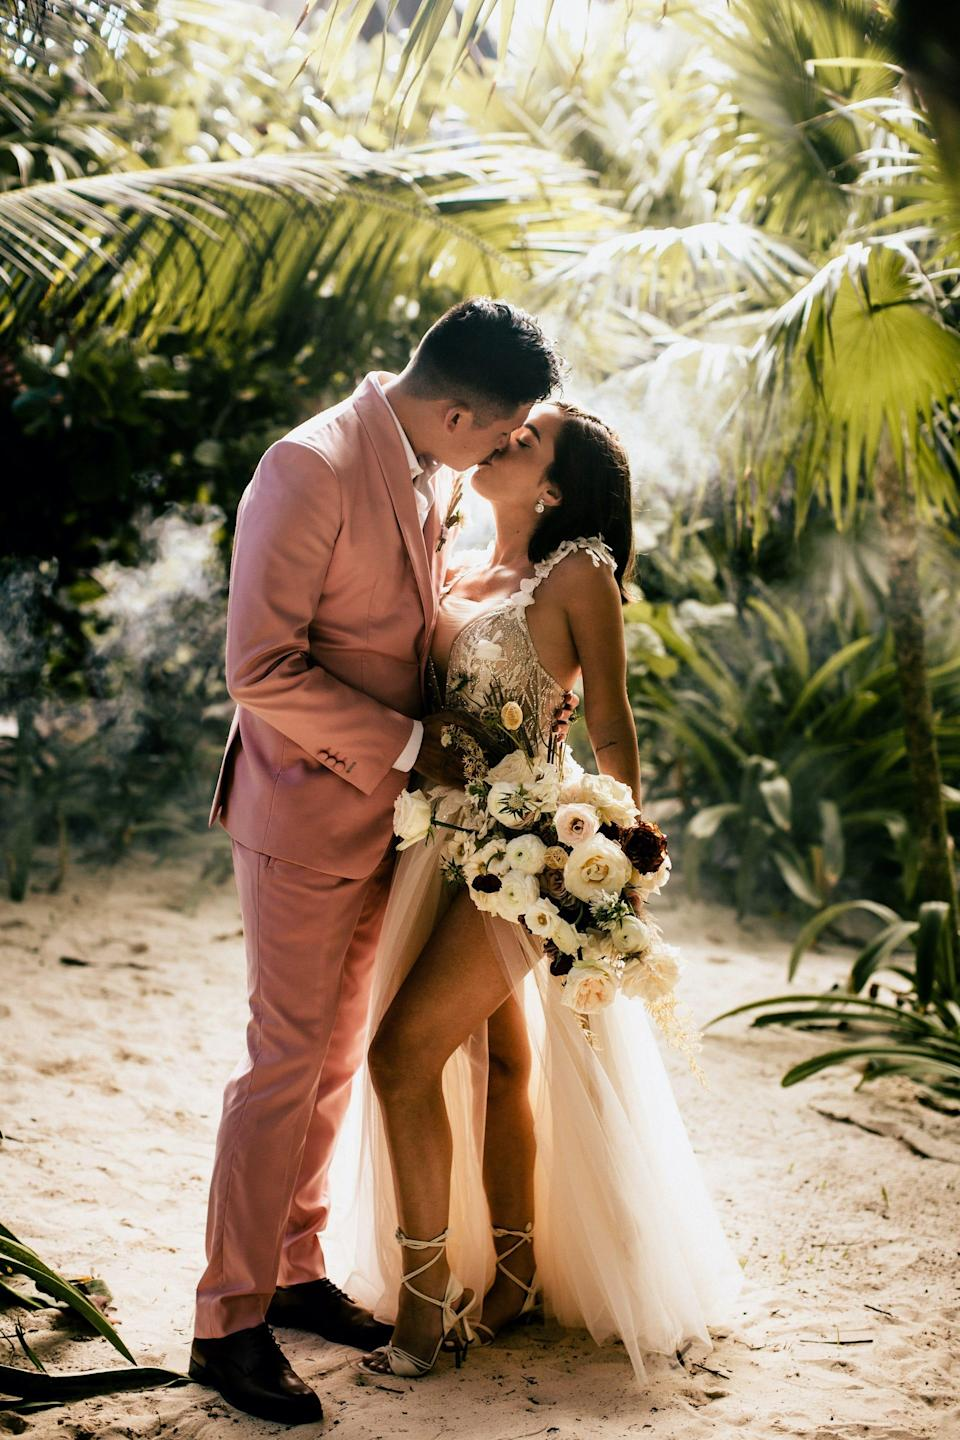 The Baks kiss in front of trees in their wedding attire